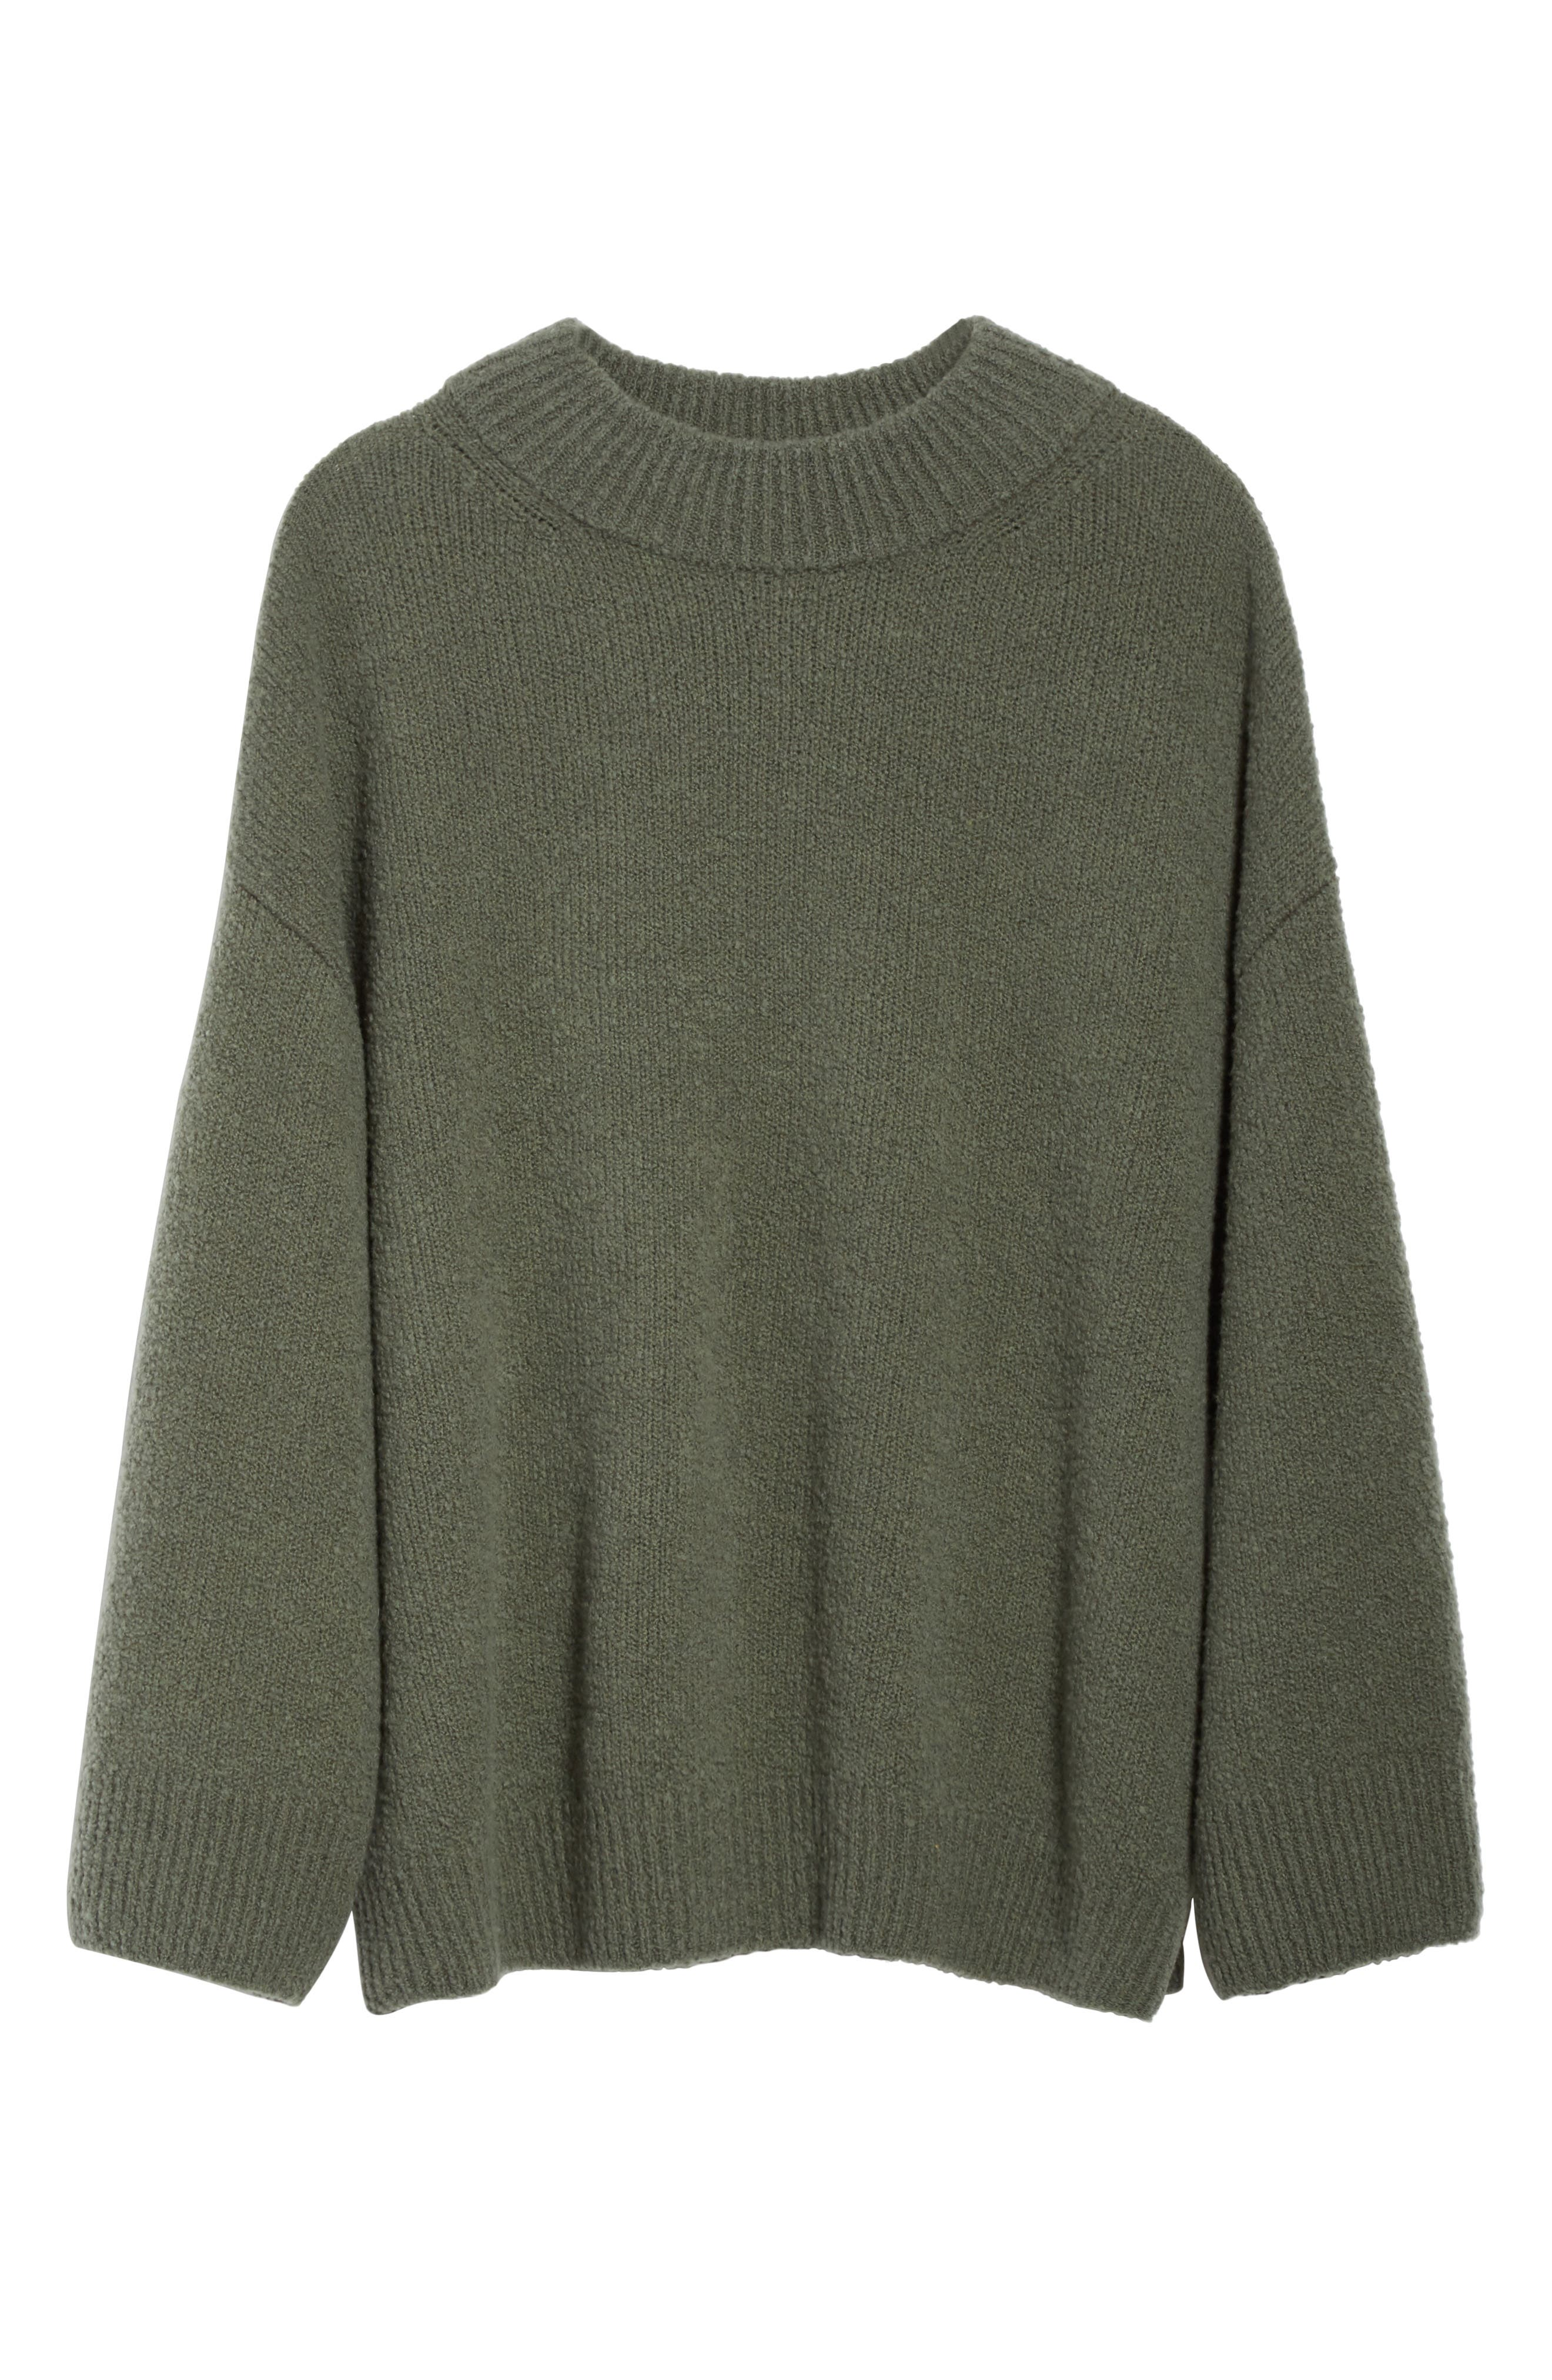 Boxy Knit Pullover,                             Alternate thumbnail 5, color,                             Frog